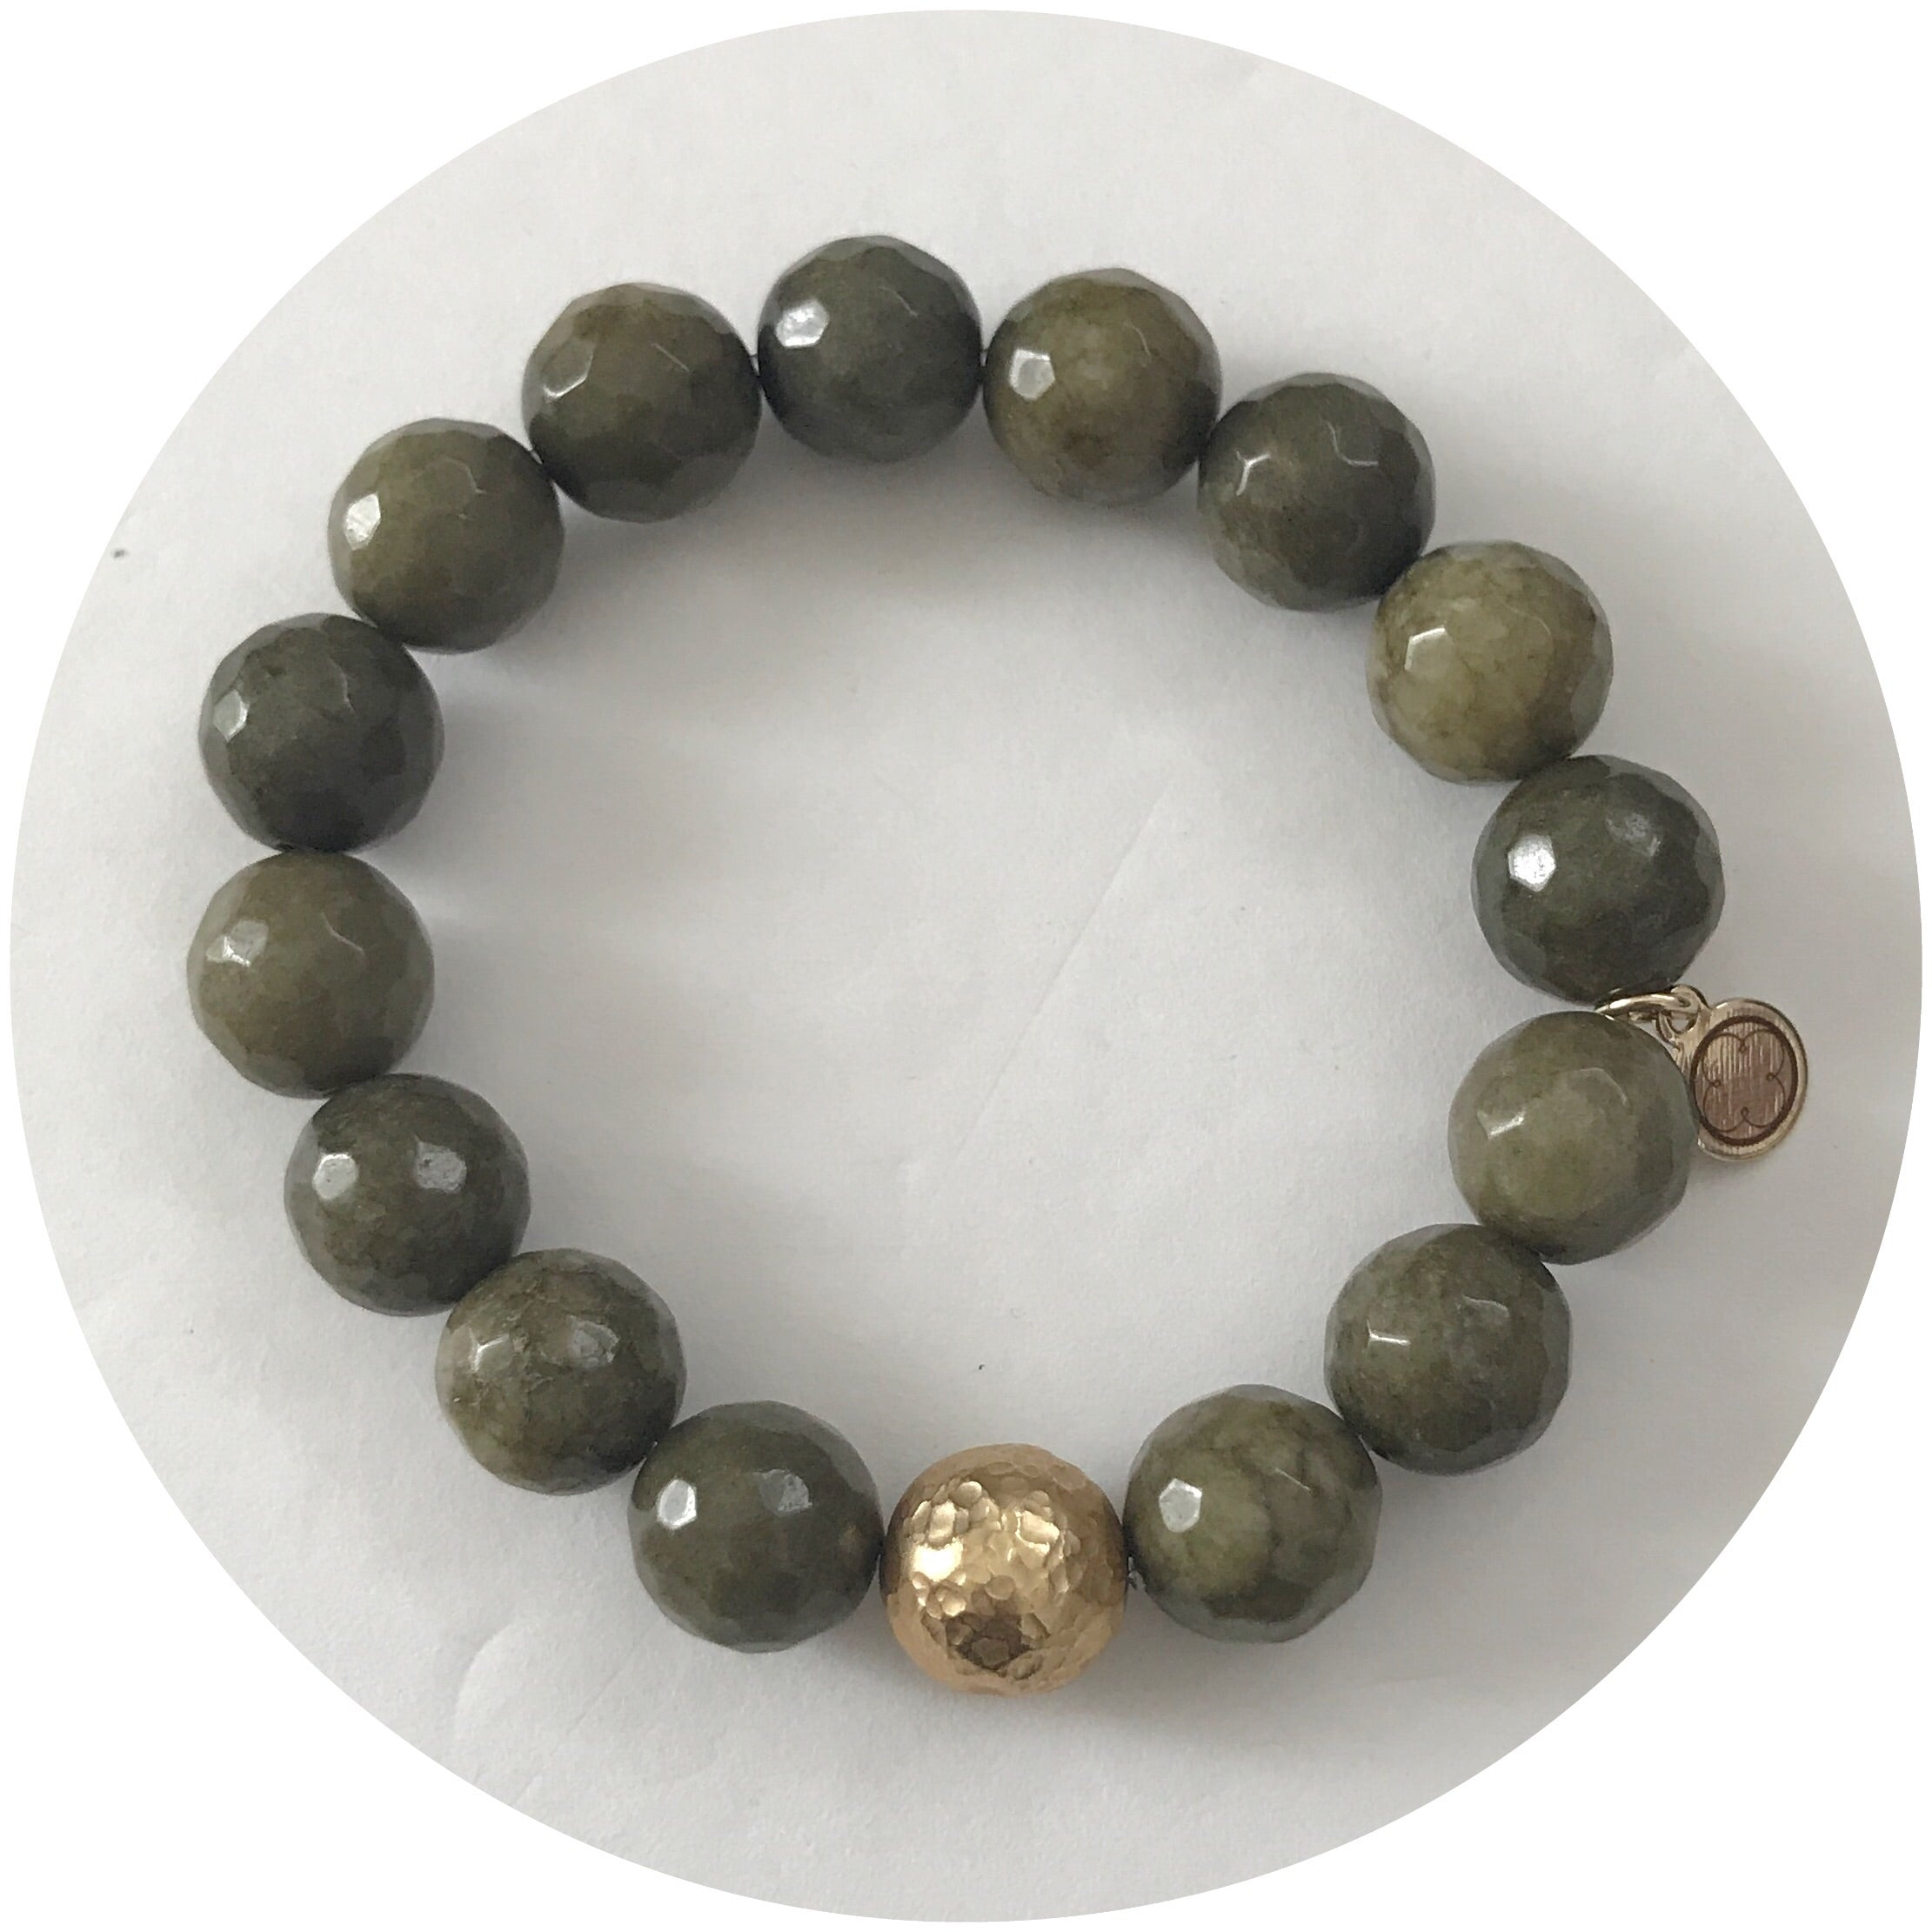 Olive Jade with Hammered Gold Accent - Oriana Lamarca LLC